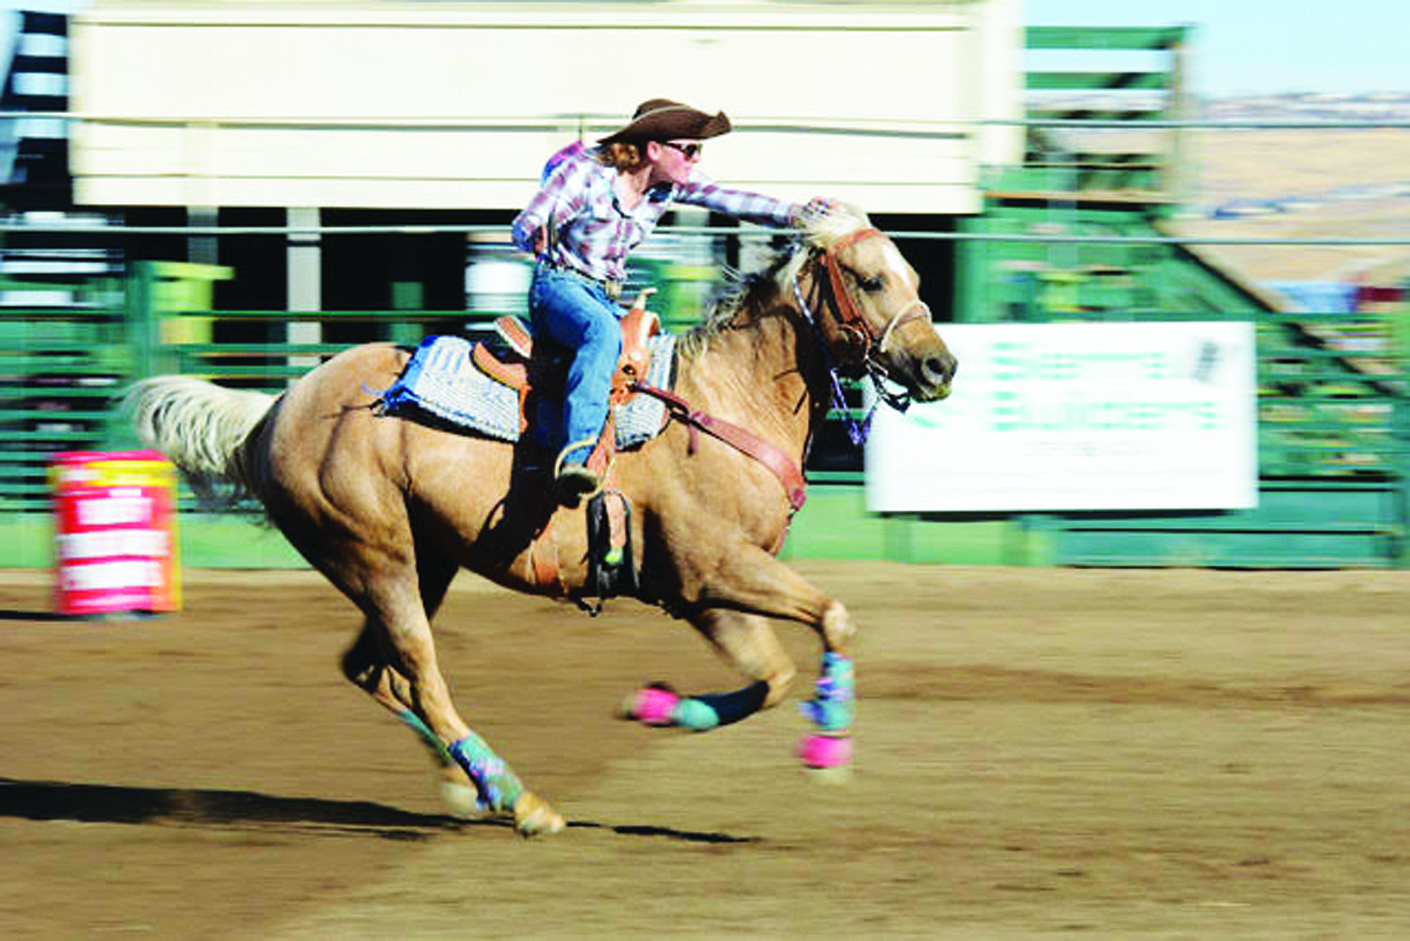 White Pine Jr. and High School Rodeo Club